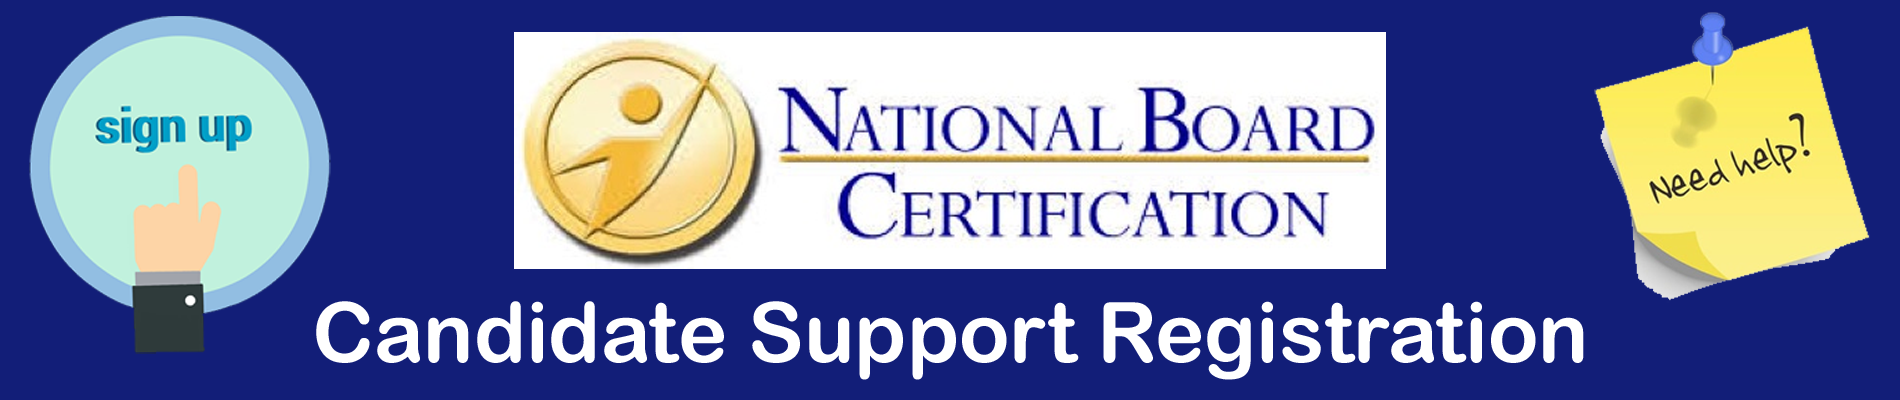 national board certification assistance